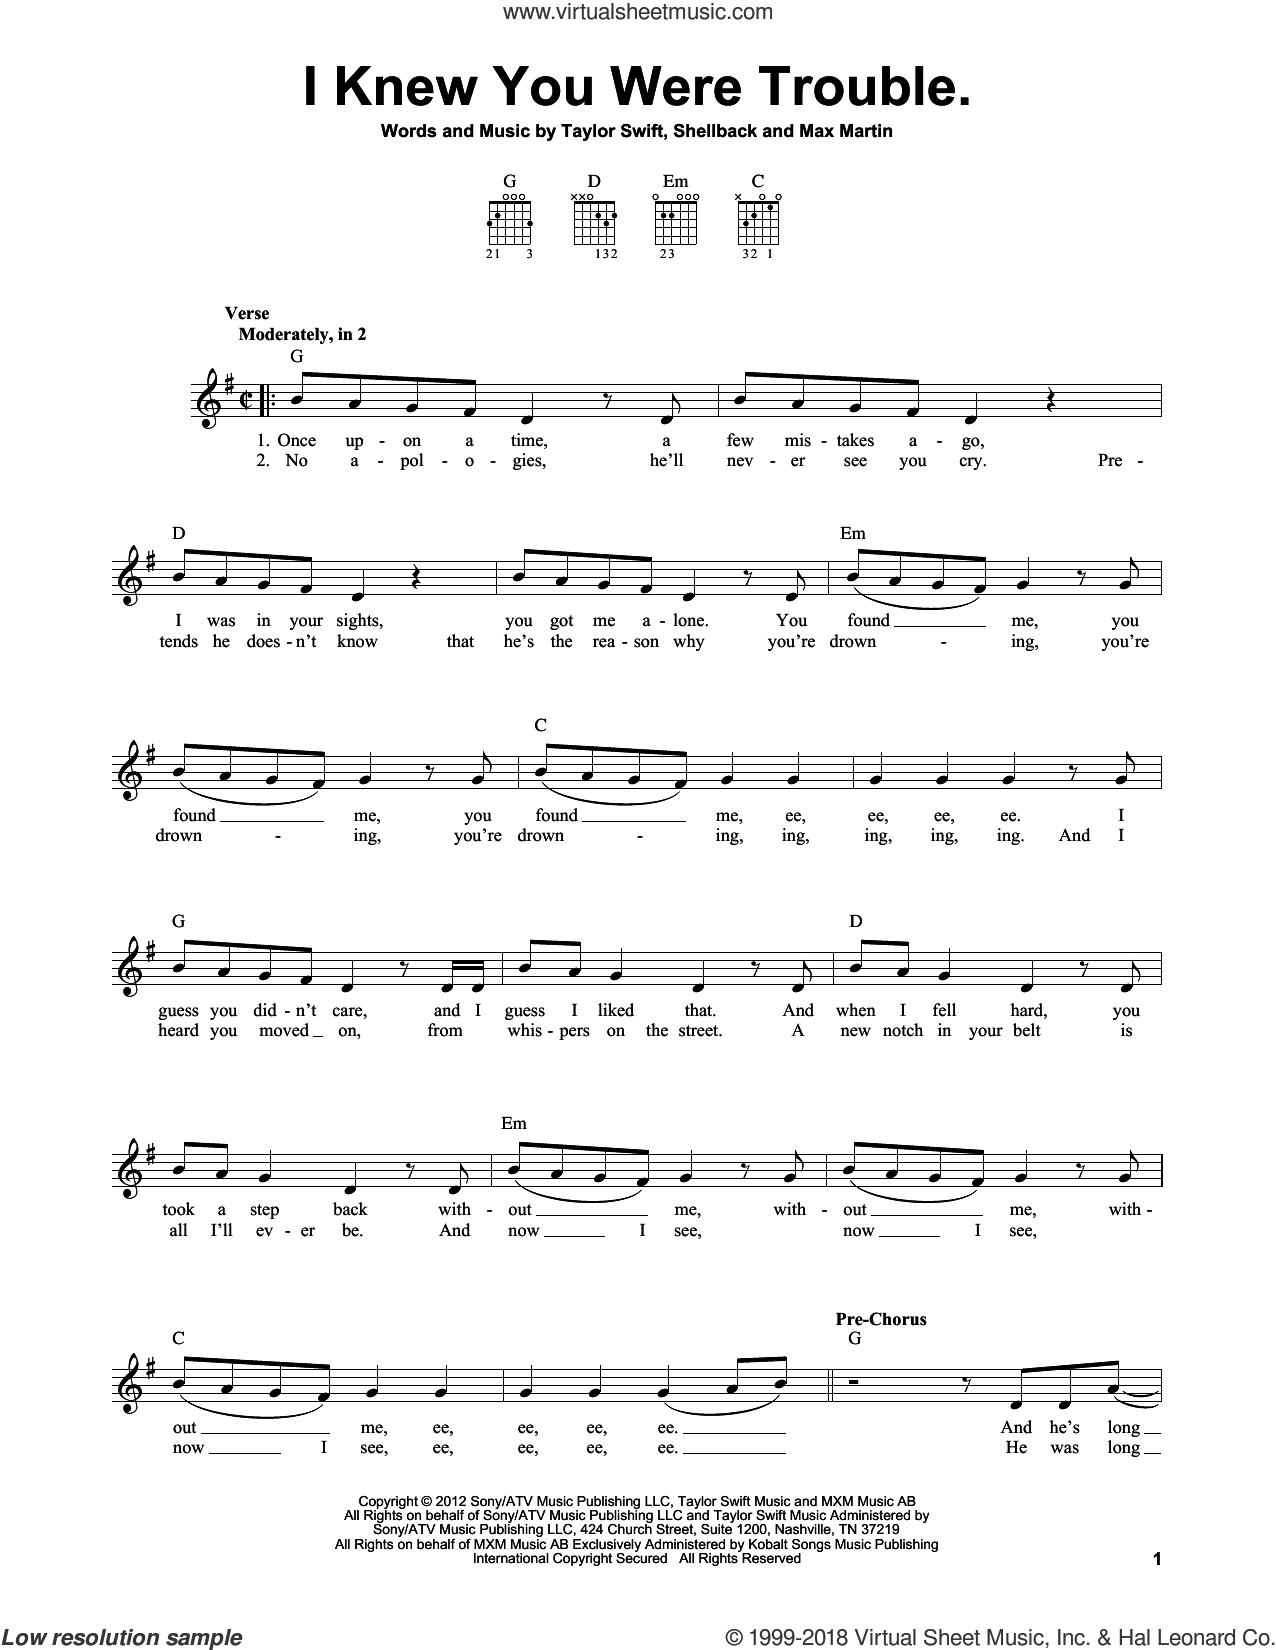 I Knew You Were Trouble sheet music for guitar solo (chords) by Shellback